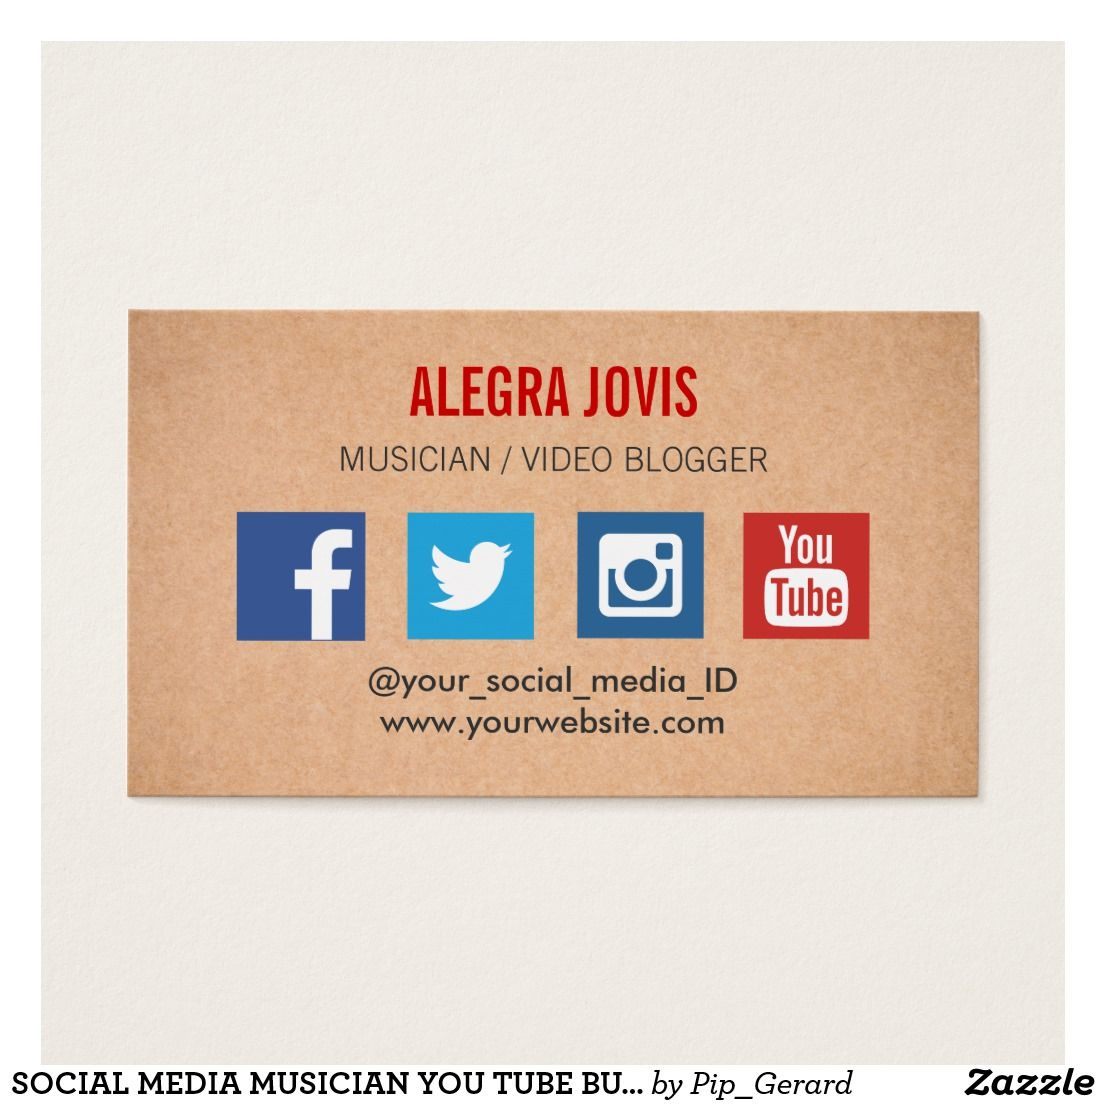 Social media musician you tube business card | Business cards